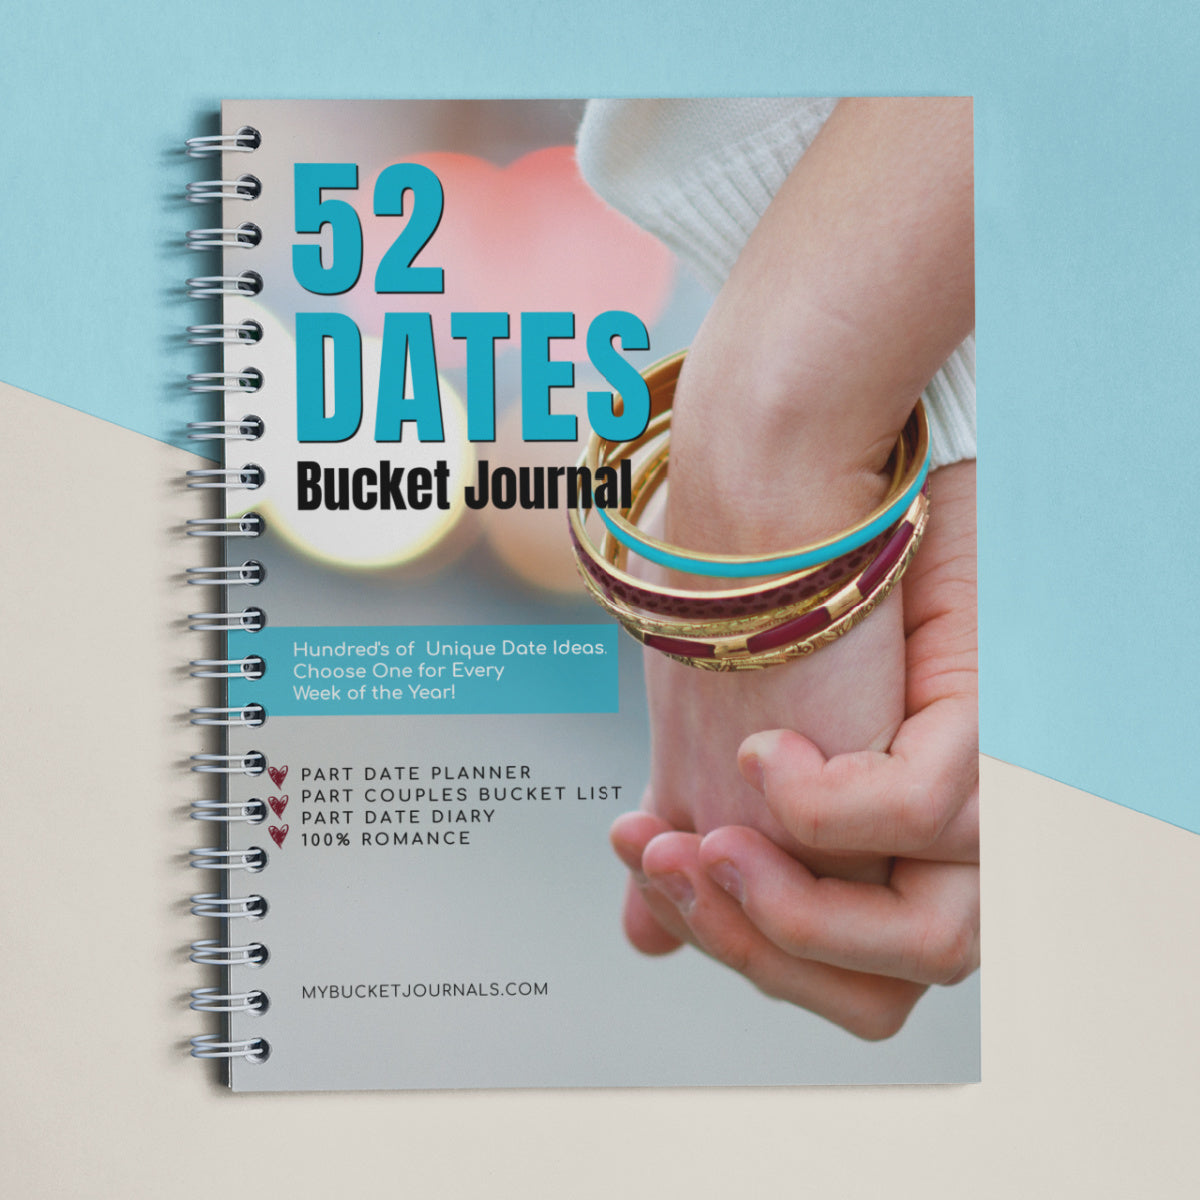 52 Dates Bucket Journal - Spiral